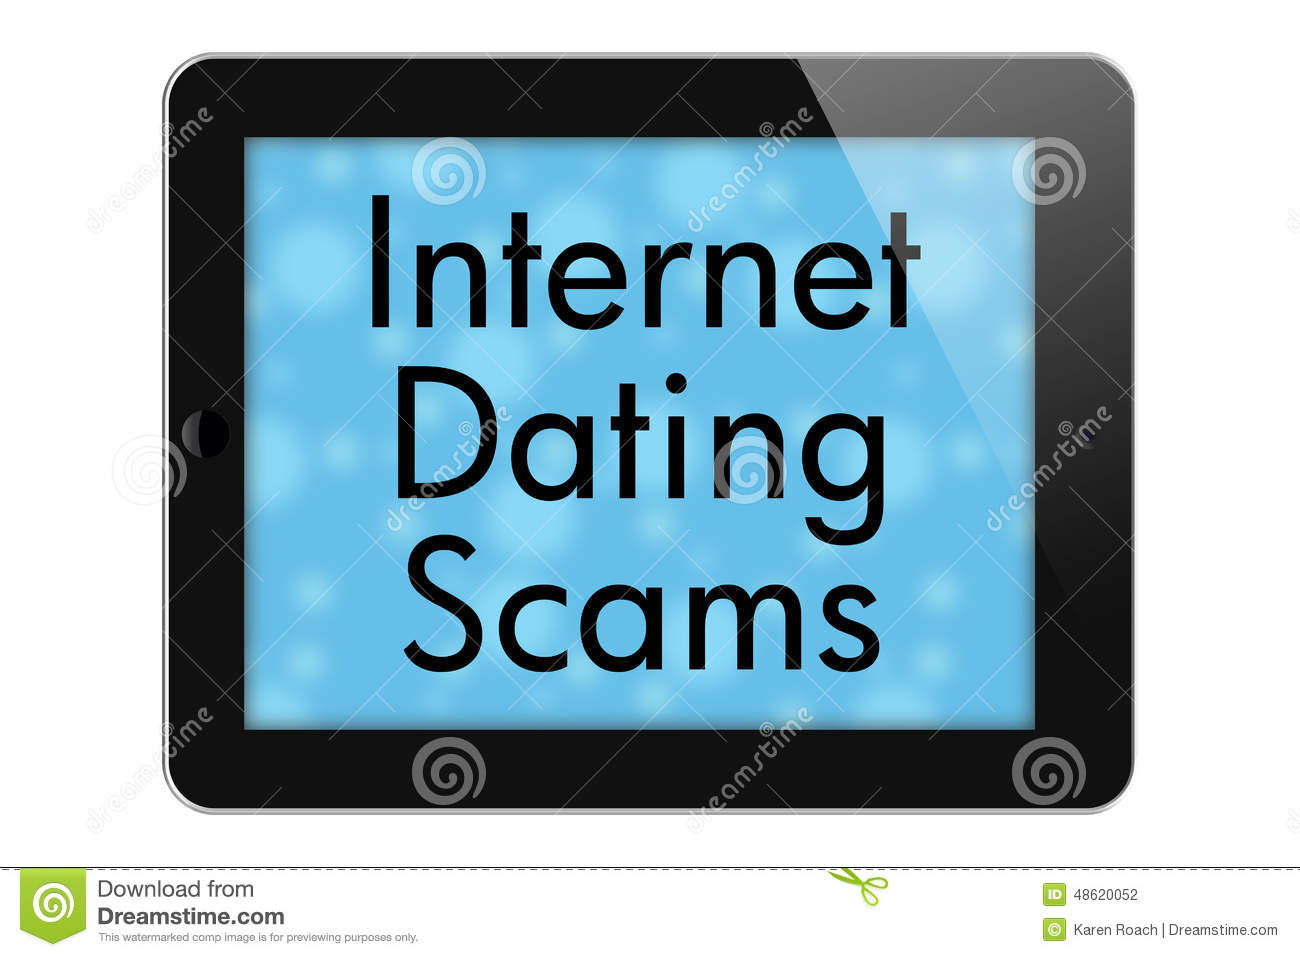 scammer online dating Millions of americans visit online dating websites every year hoping to find a companion or even a soulmate but as valentine's day gets closer, we want to warn you that criminals use these sites, too, looking to turn the lonely and vulnerable into fast money through a variety of scams these.